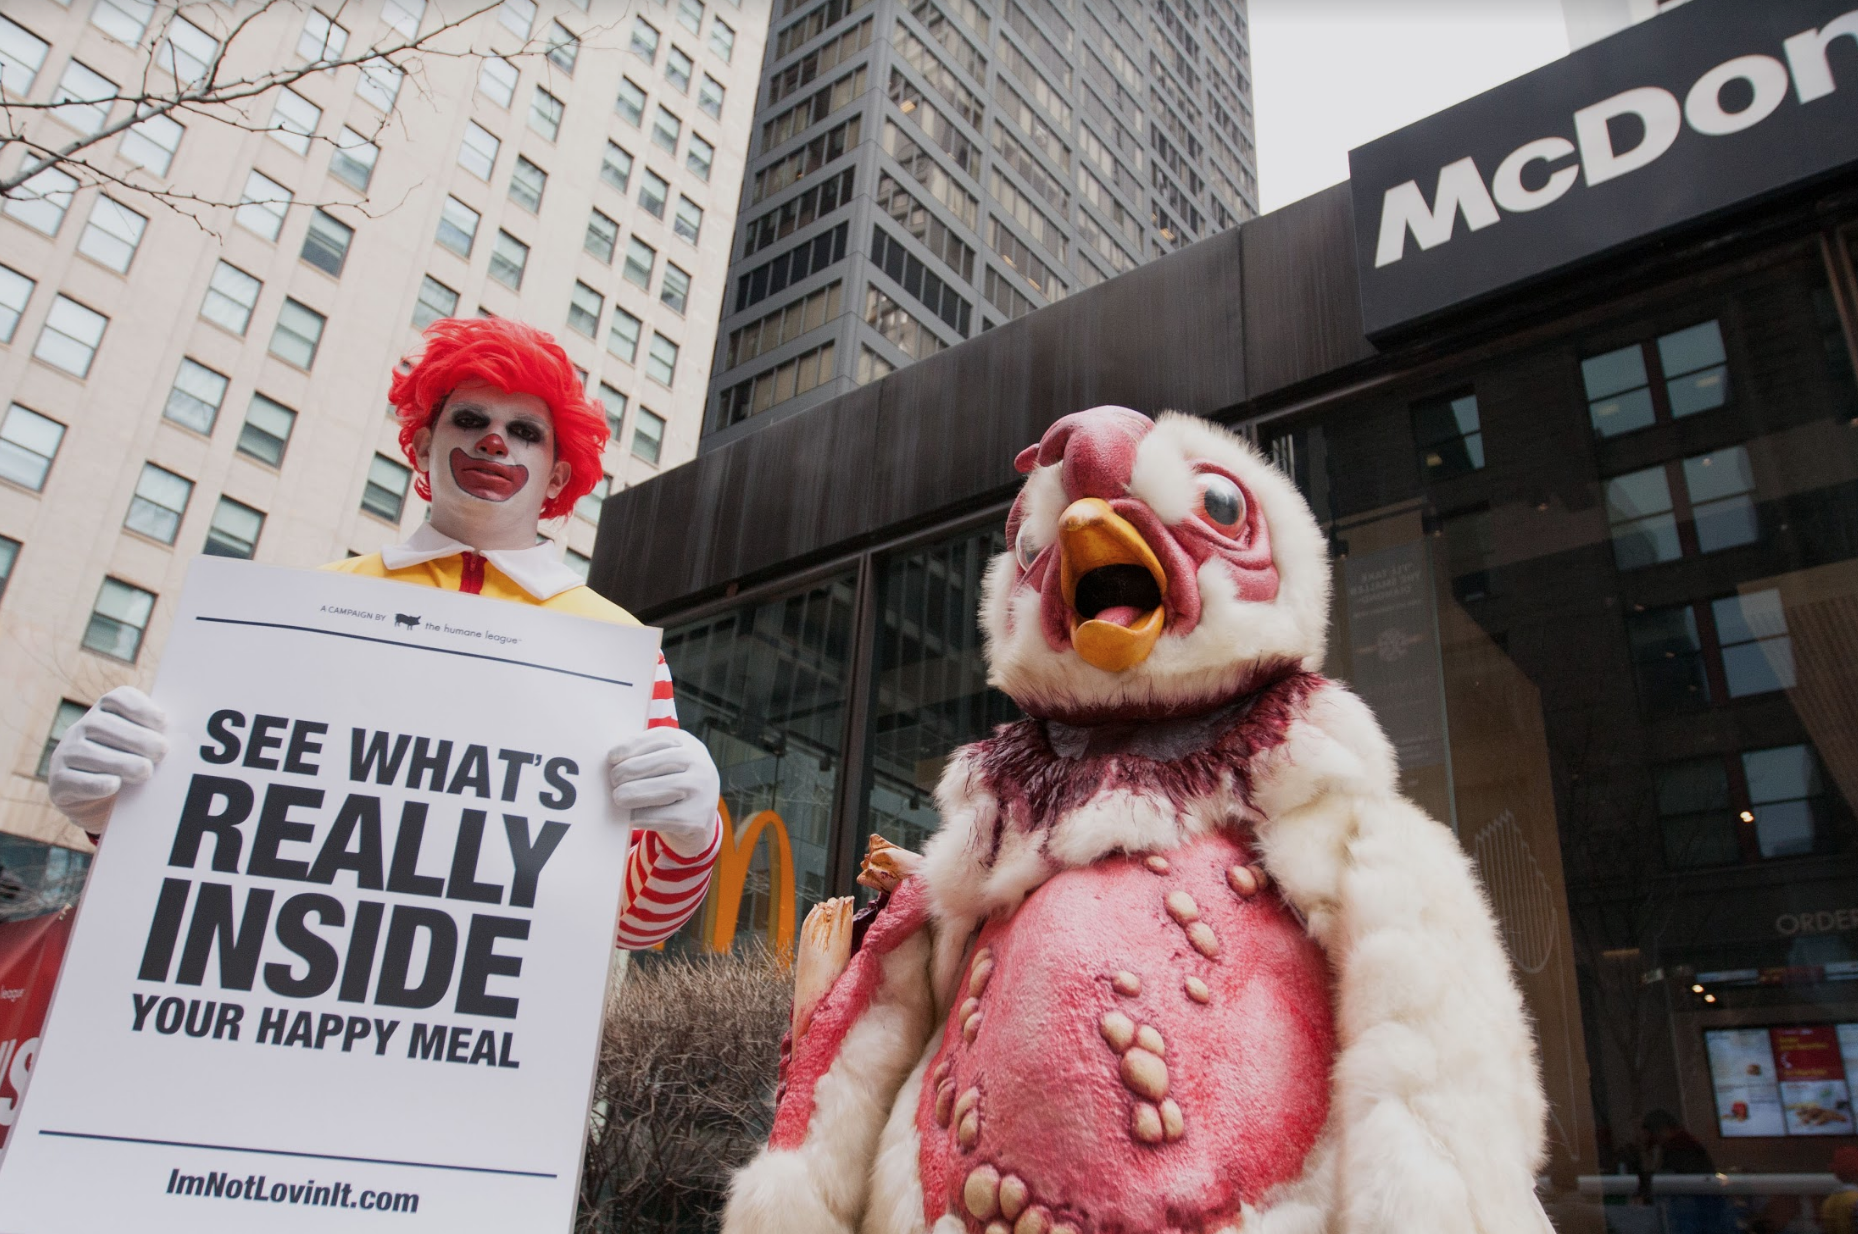 not-so-happy meals: animal rights group takes on mcdonald's in